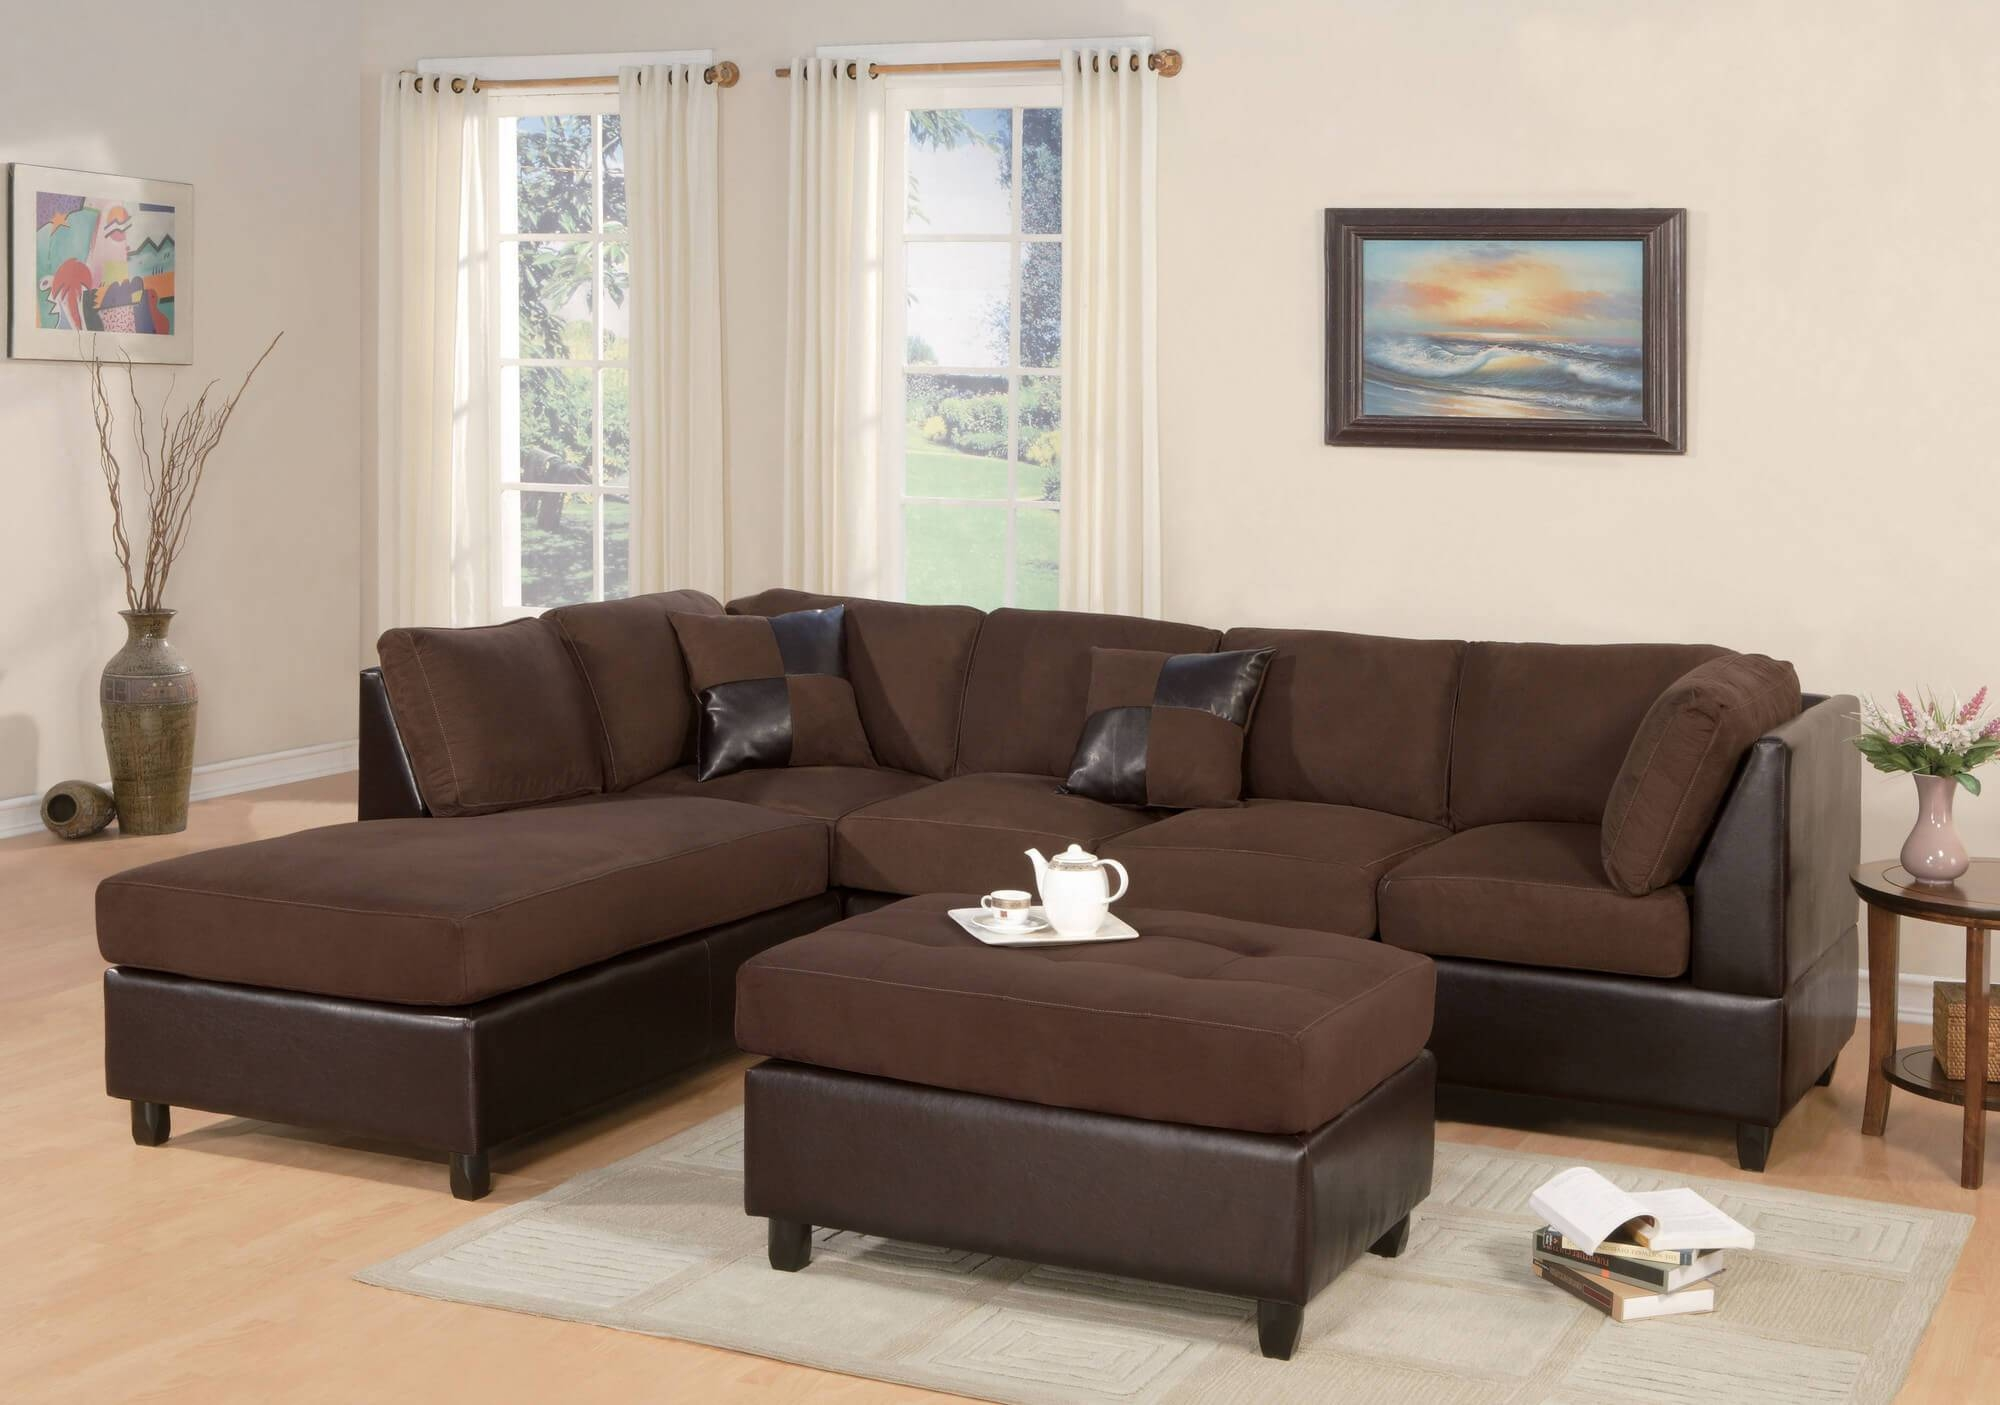 Long Sectional Sofas - Cleanupflorida inside 7 Seat Sectional Sofa (Image 13 of 30)